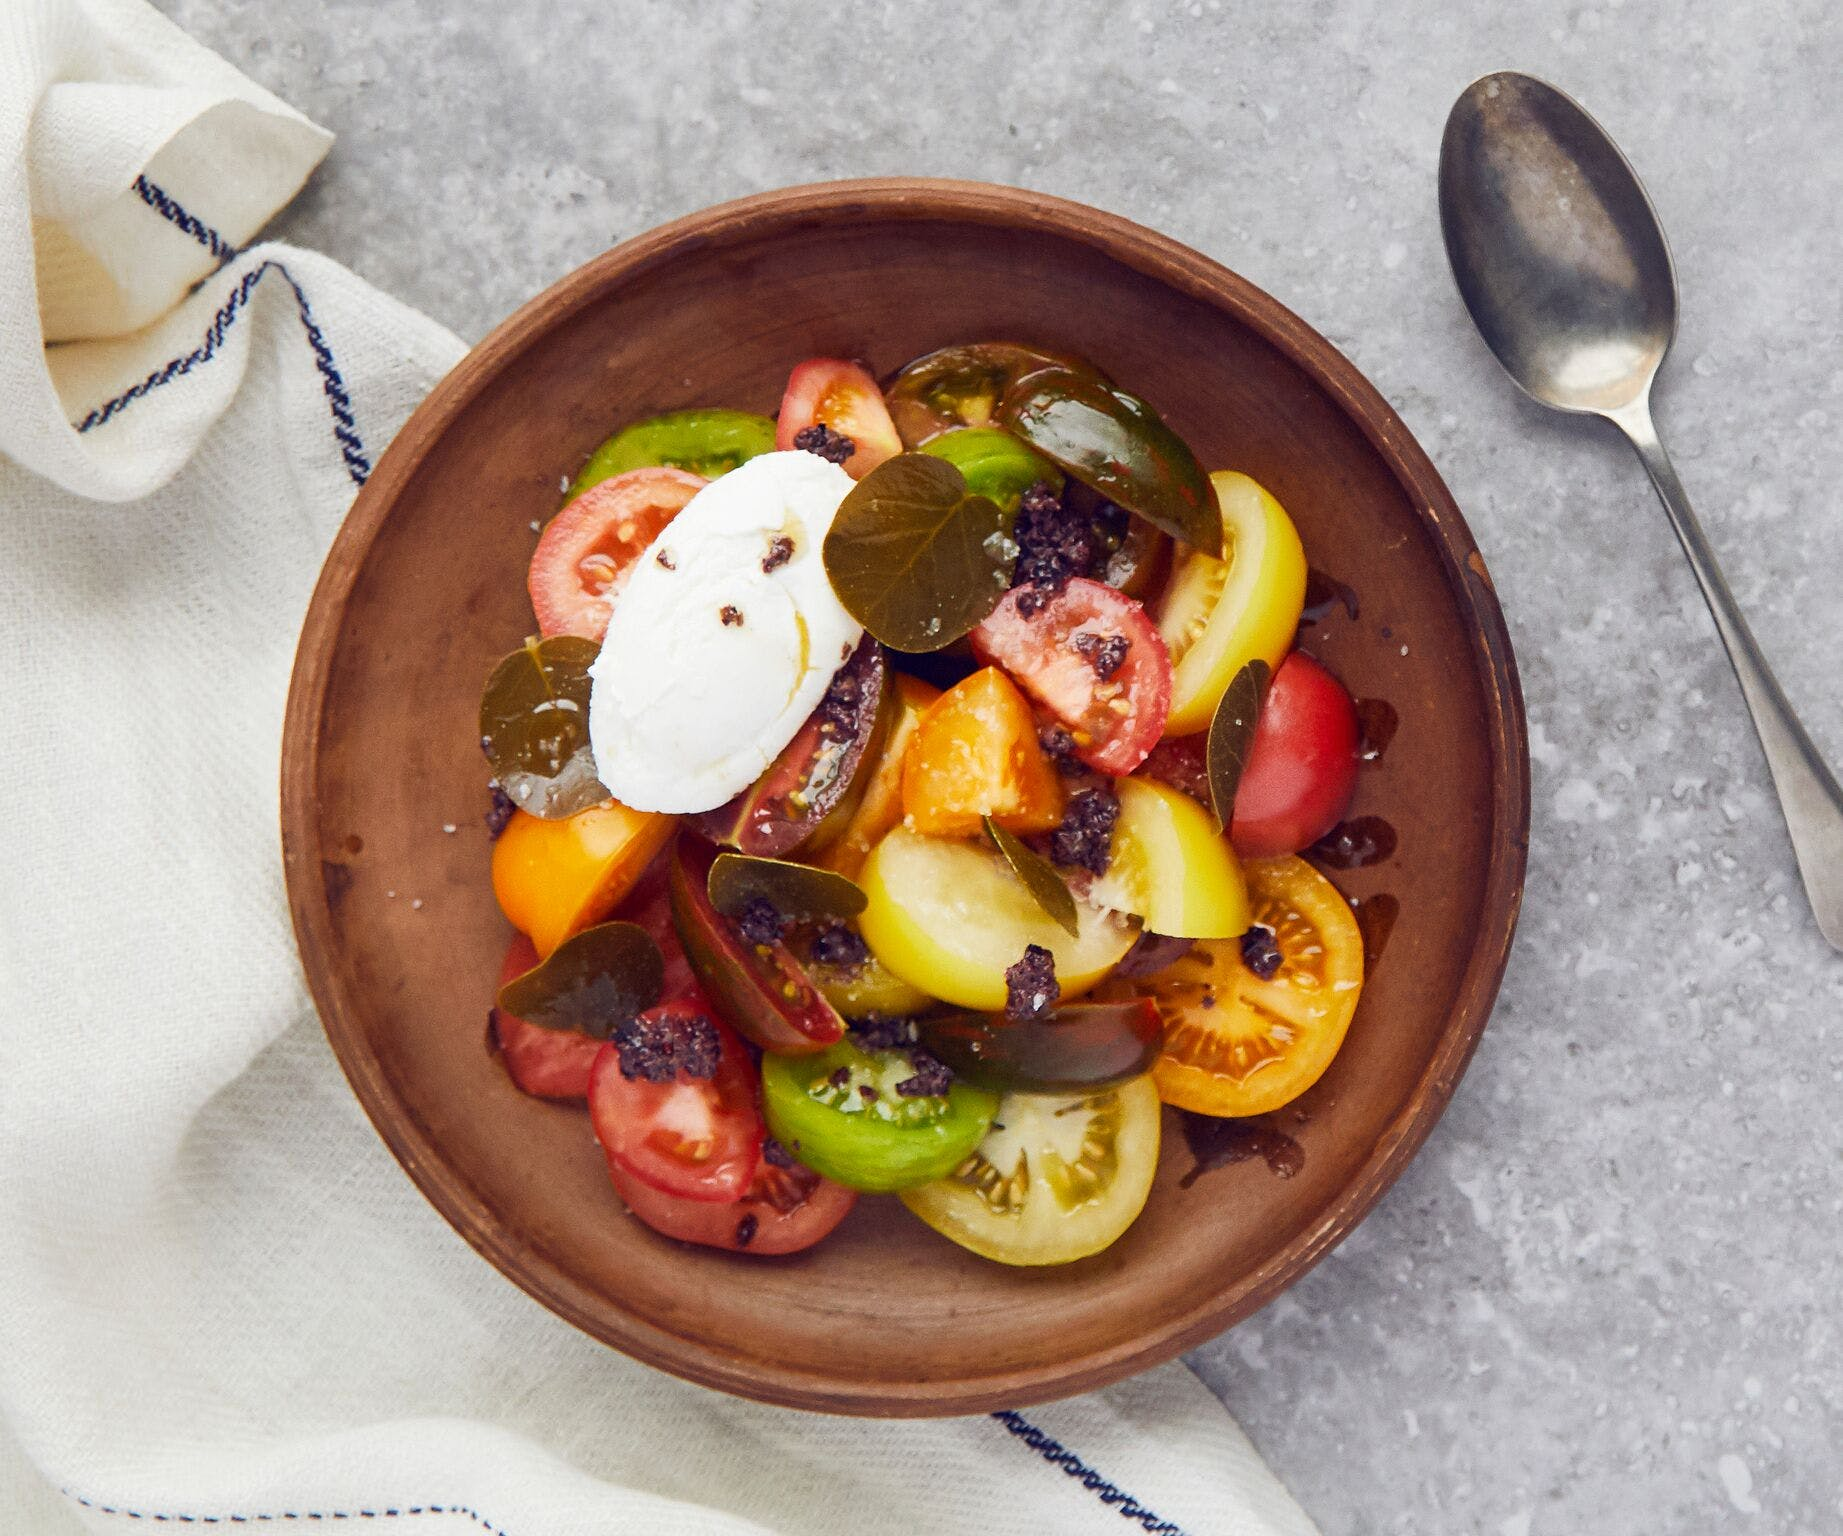 Heirloom Tomatoes with Goat's Curd, Tapenade and Wild Caper Leaves